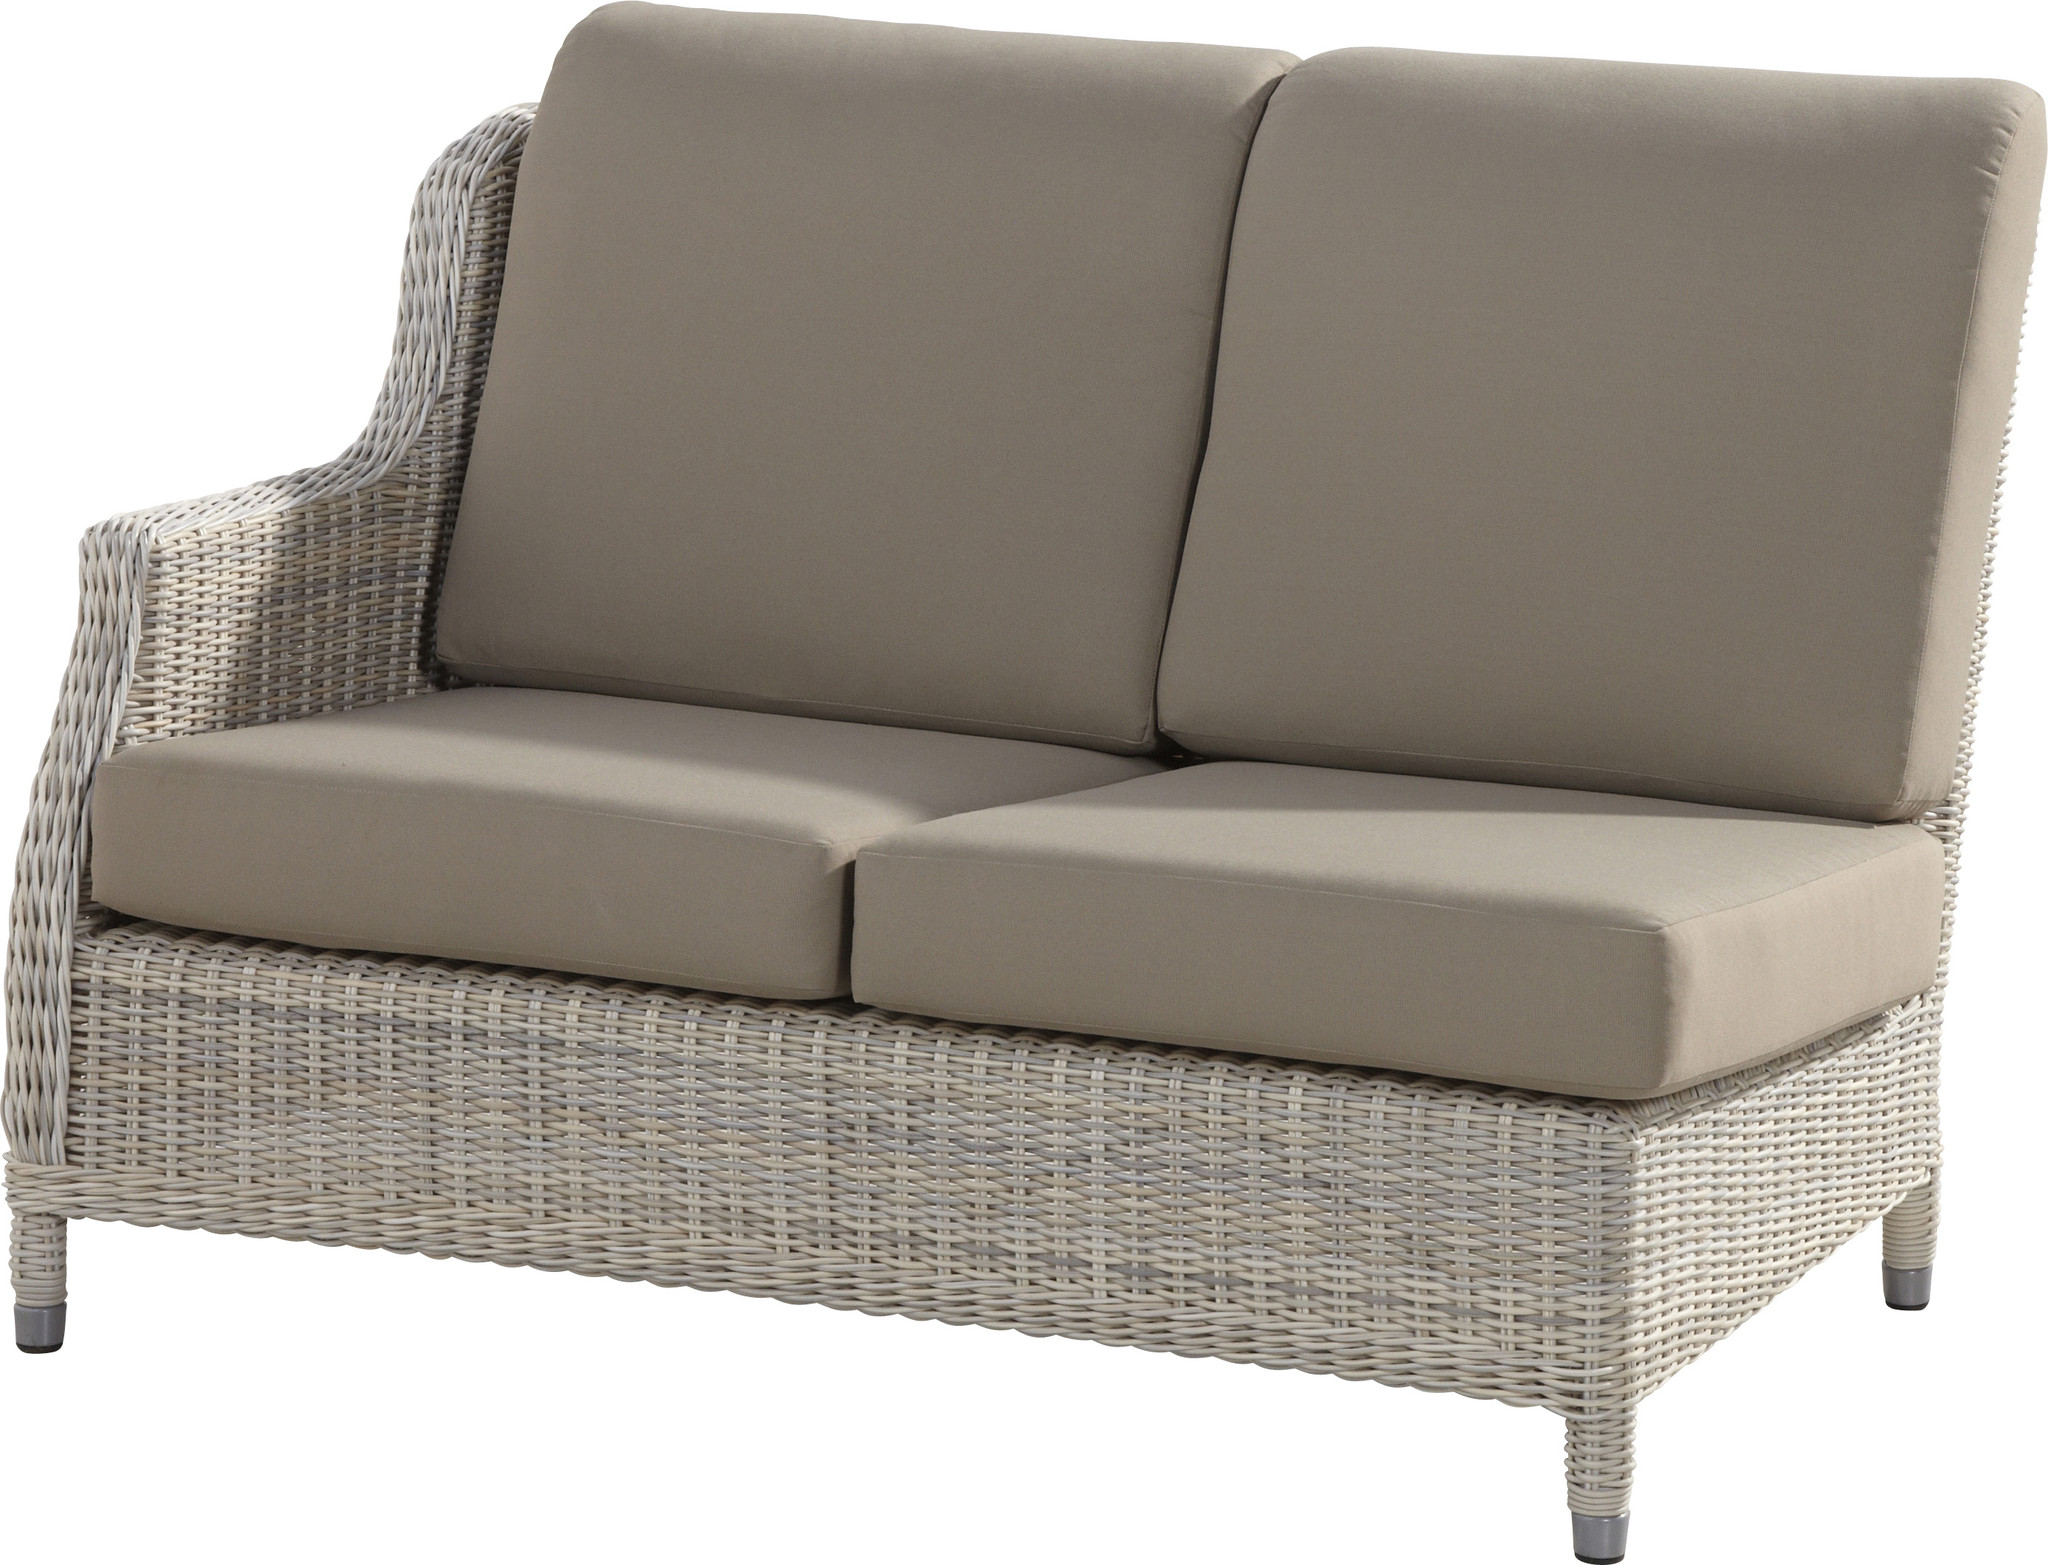 Brighton modular 2 seat sofa right